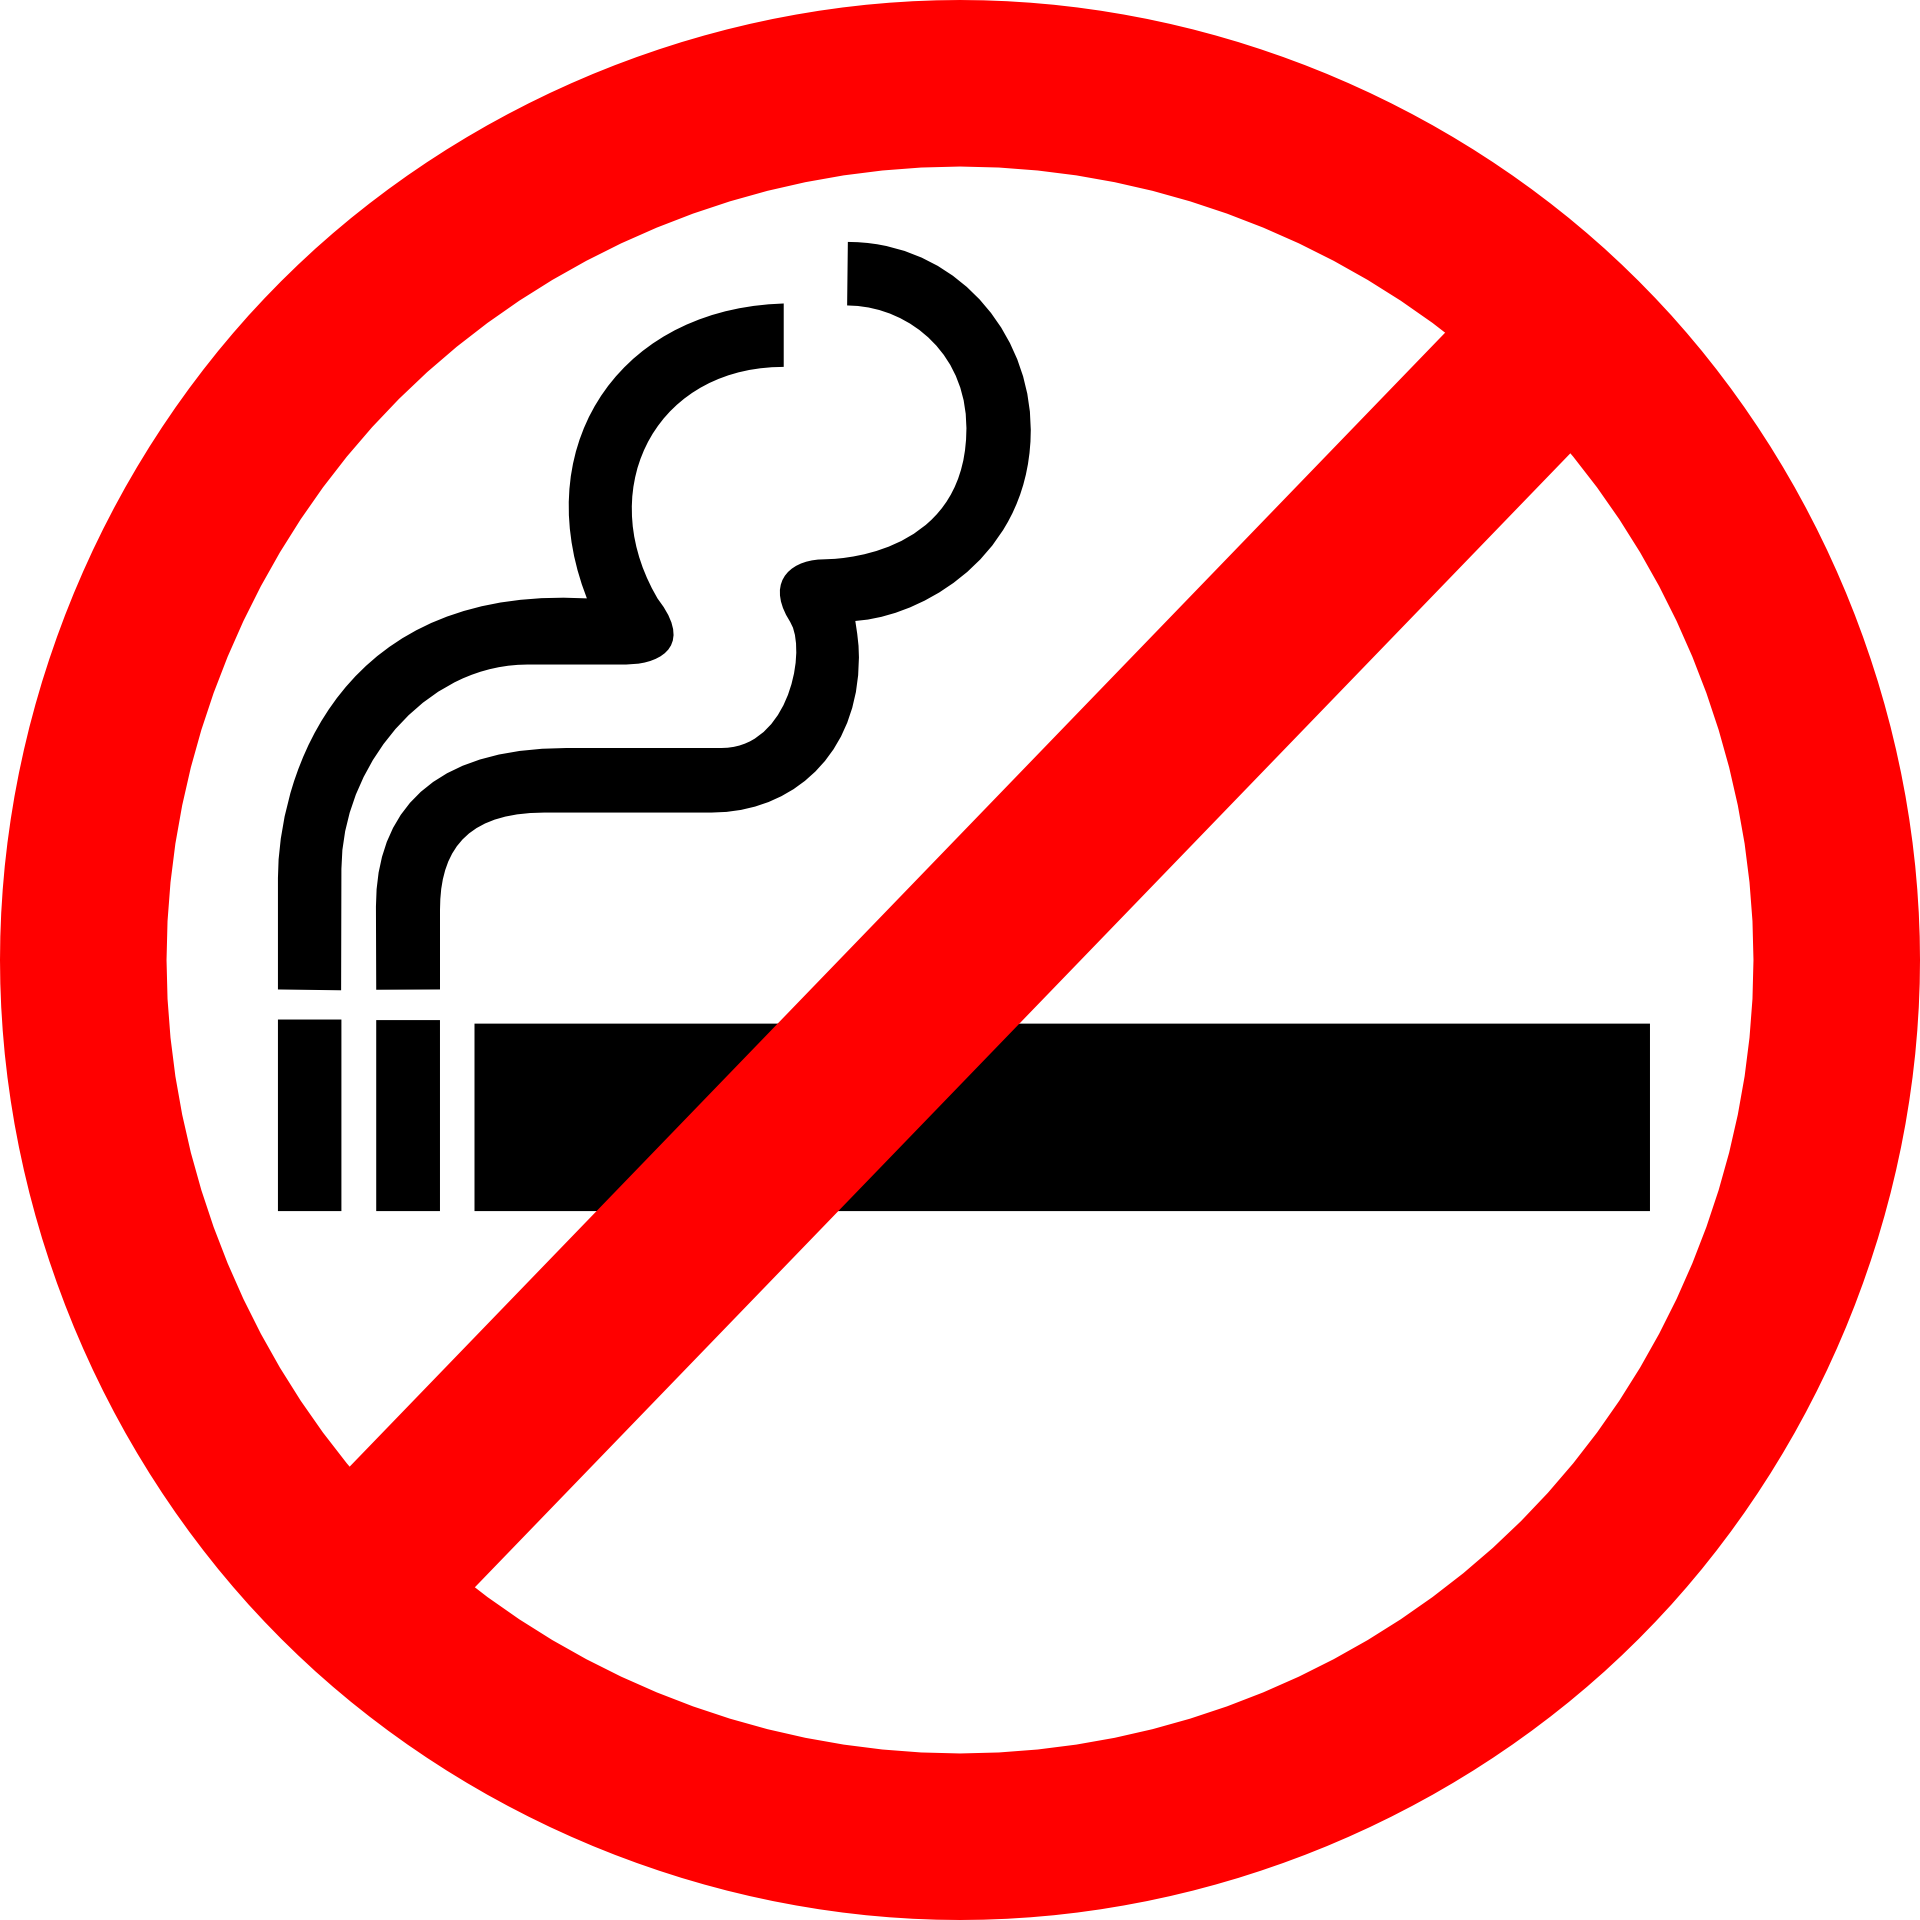 Break the habit of smoking clipart vector free library Why\'s It So Hard to Quit Smoking? Neuroscience Has New Clues ... vector free library